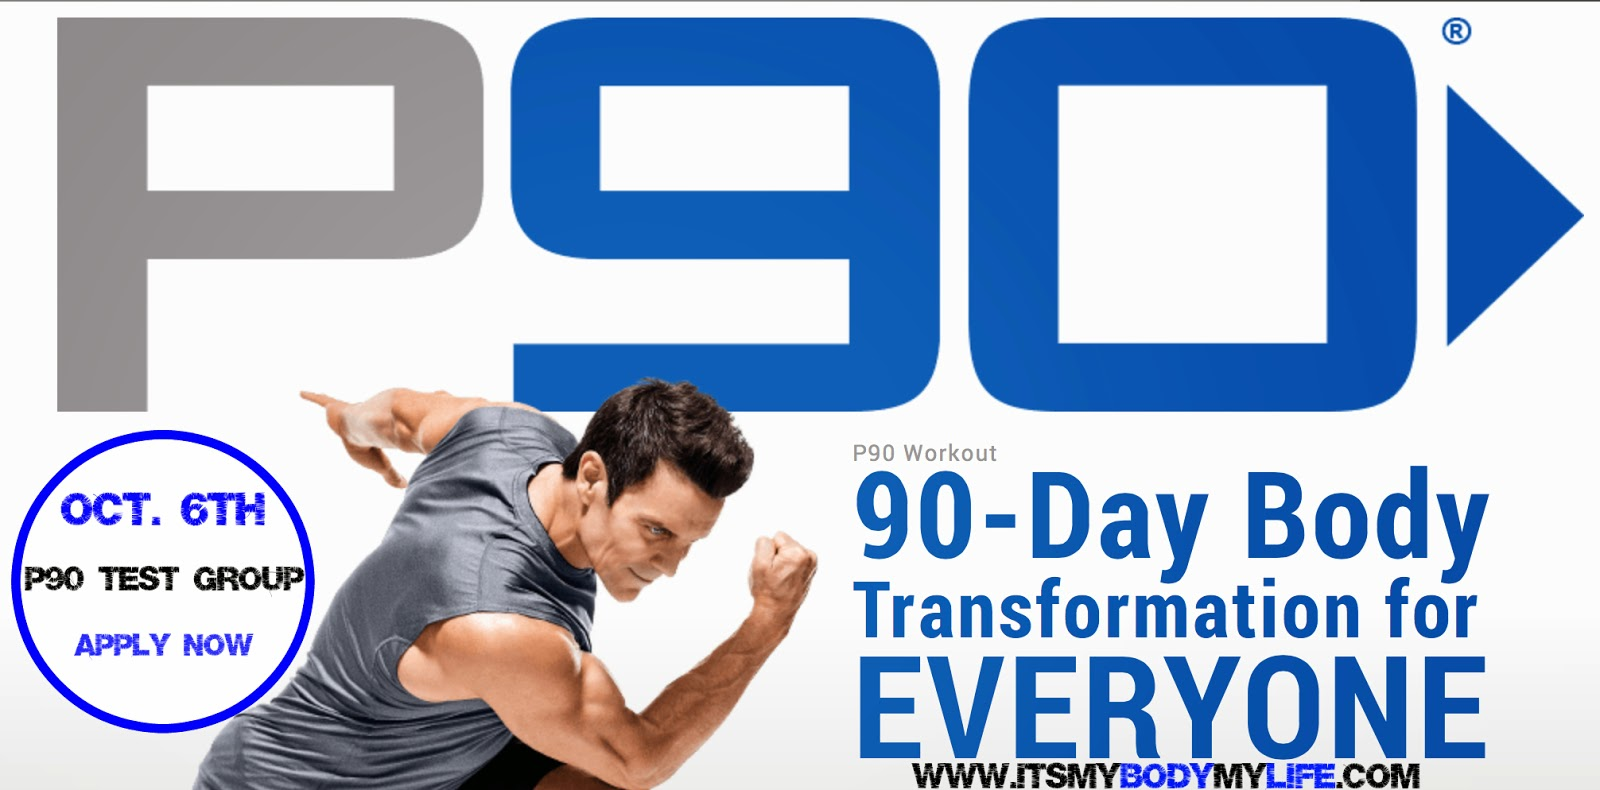 p90, p90 challenge group, p90 test group, p90 results, tony horton,